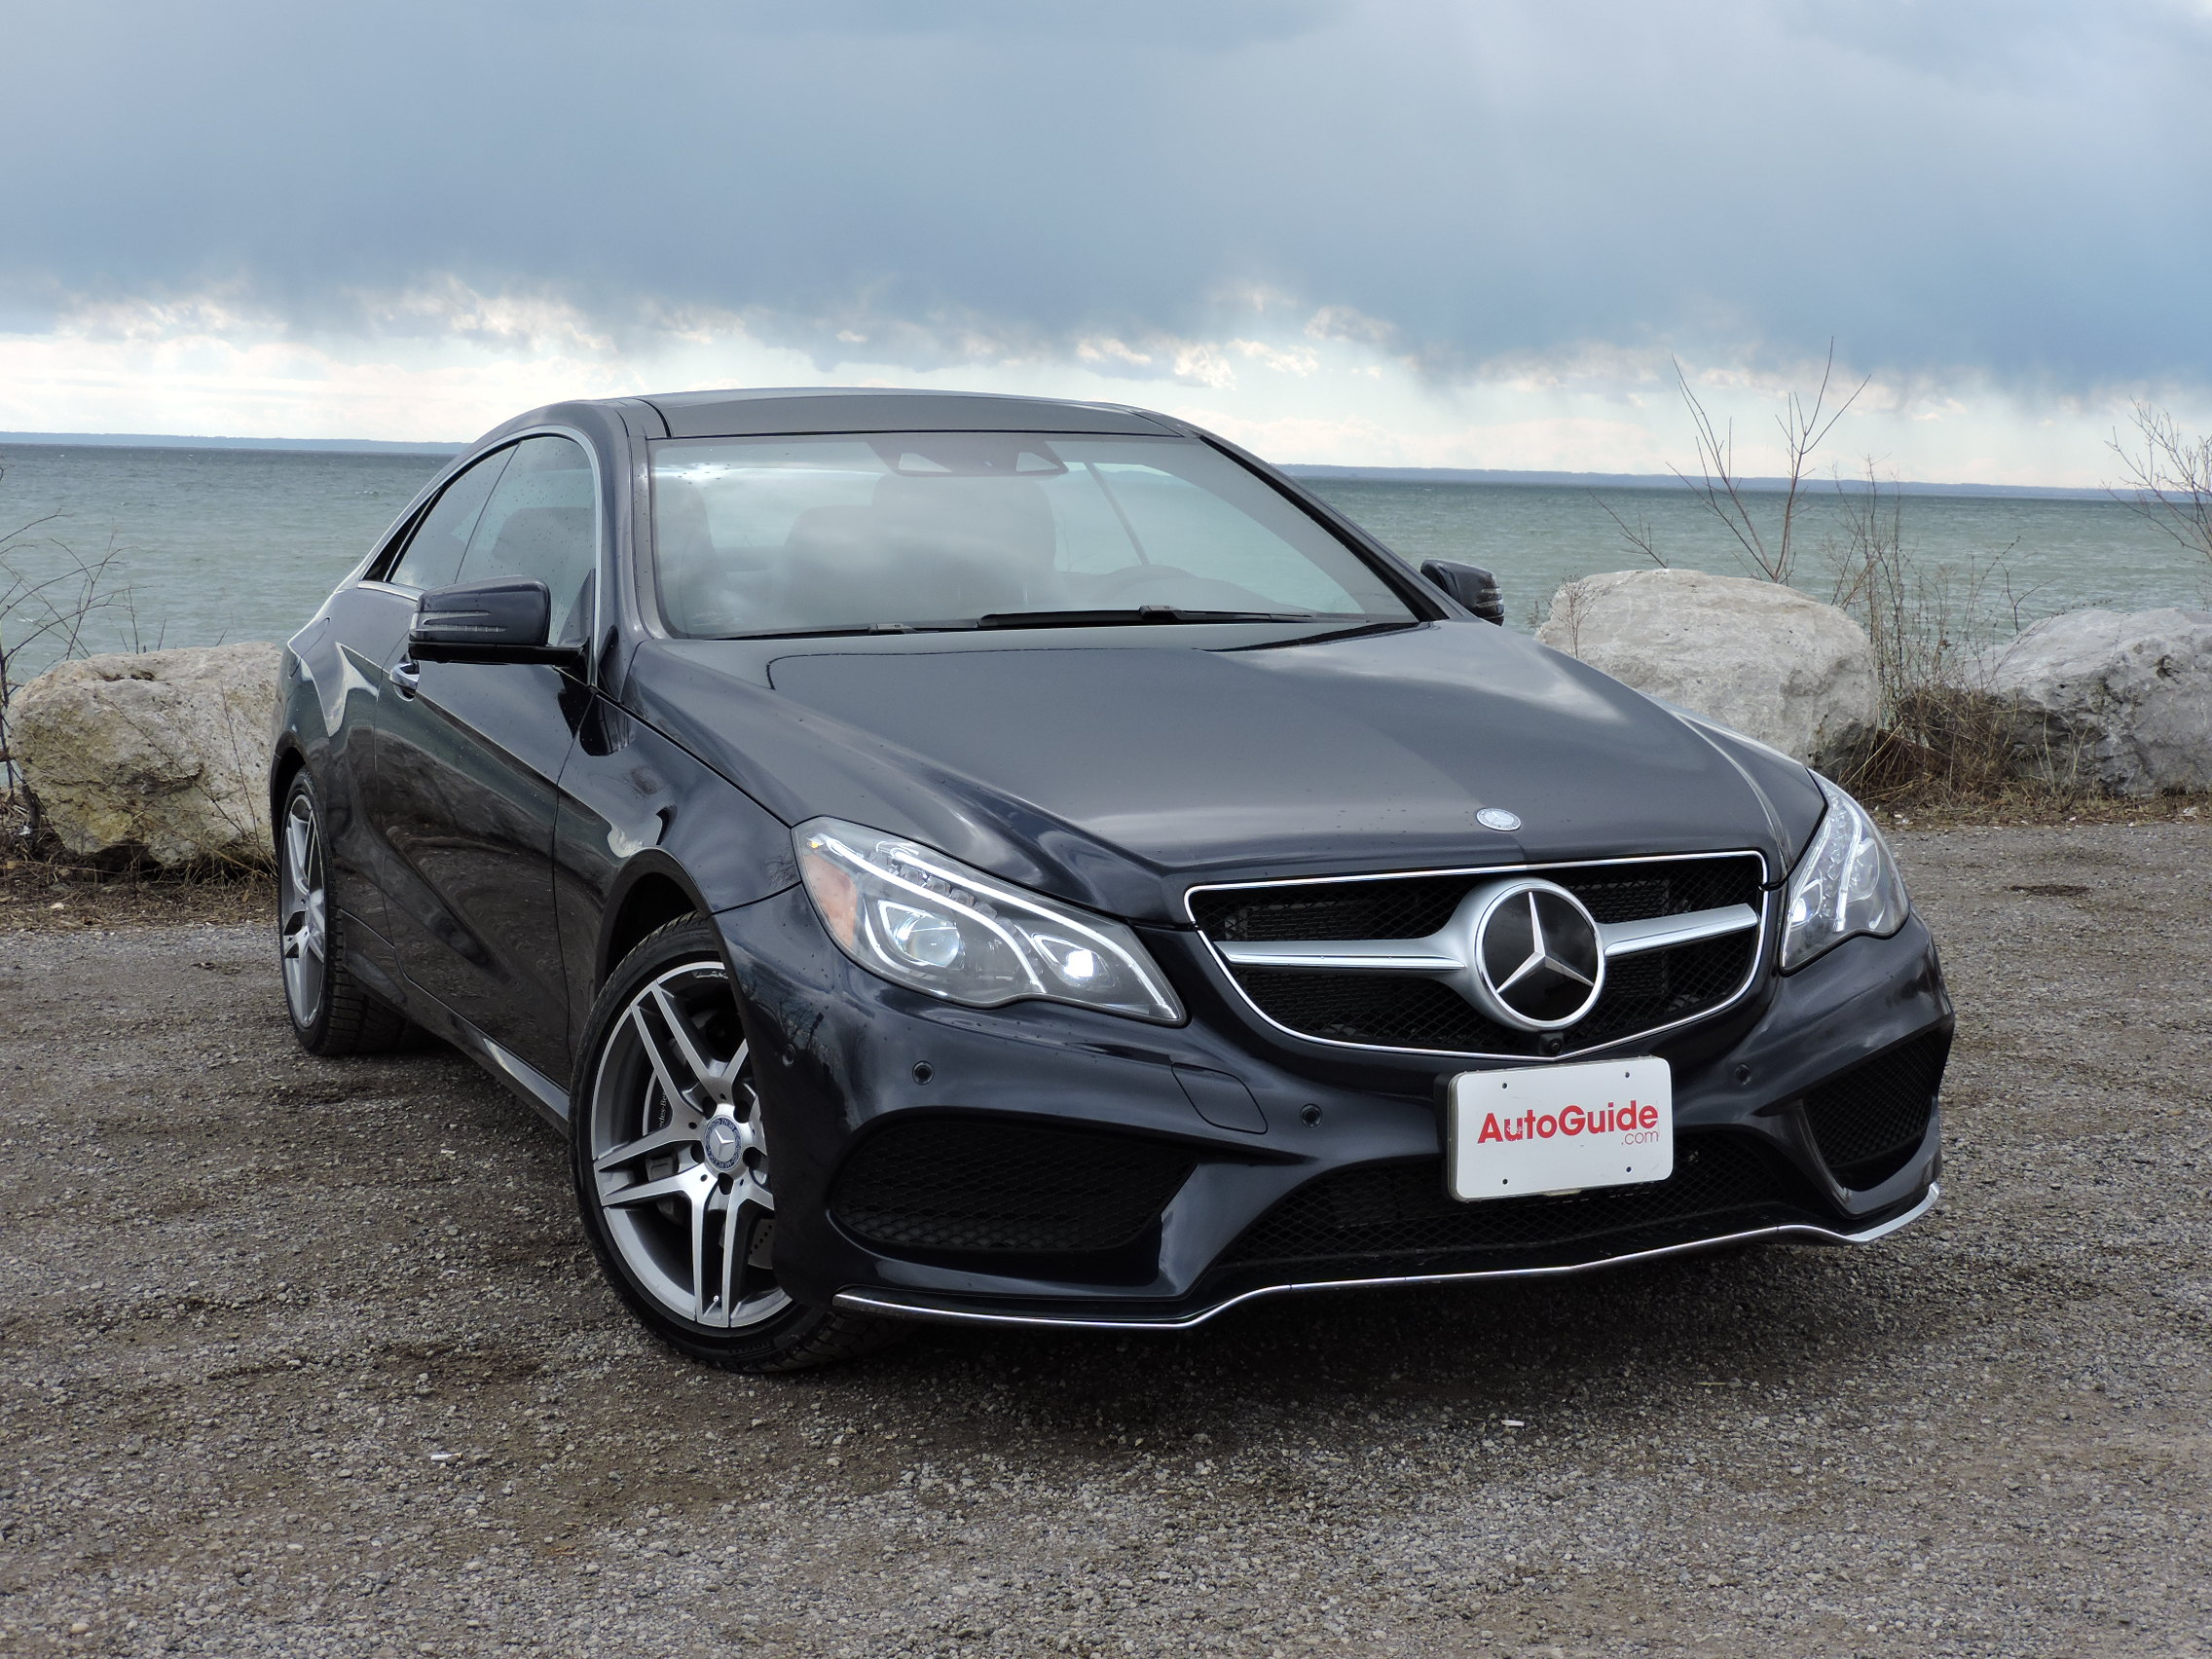 2016 mercedes benz e550 coupe review news for Mercedes benz reliability ratings